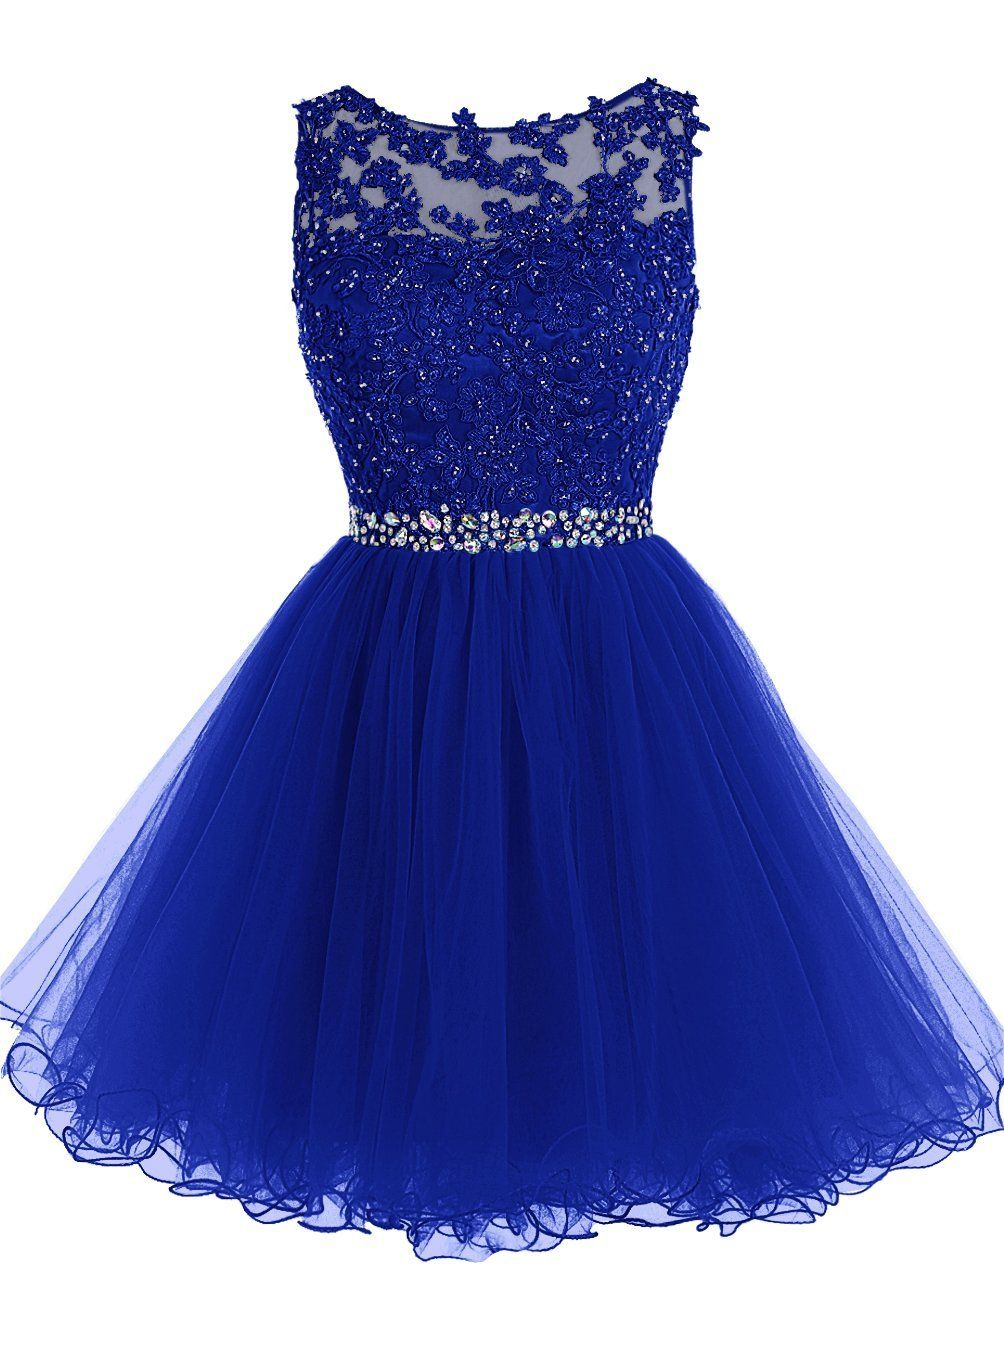 Royal blue keyhole back cocktail dress party dress with lace